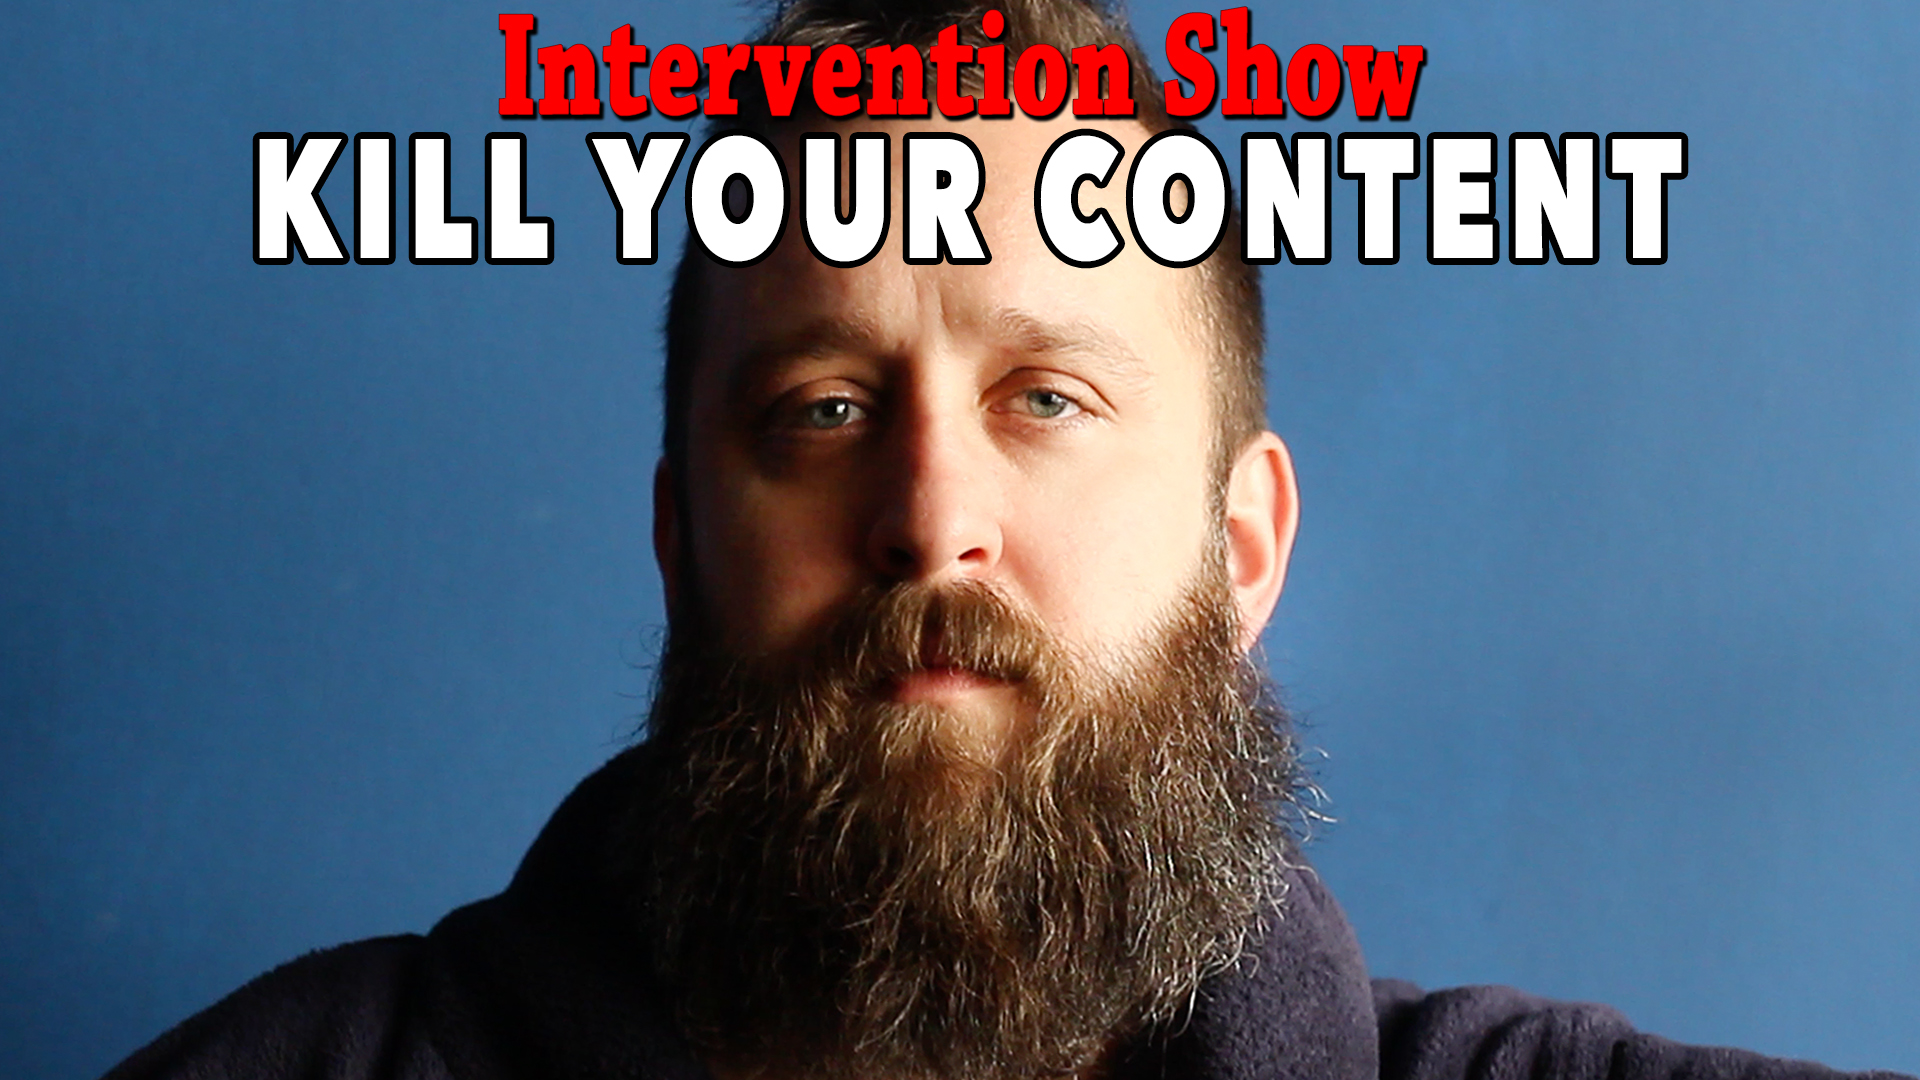 Intervention Show: Kill Your Content